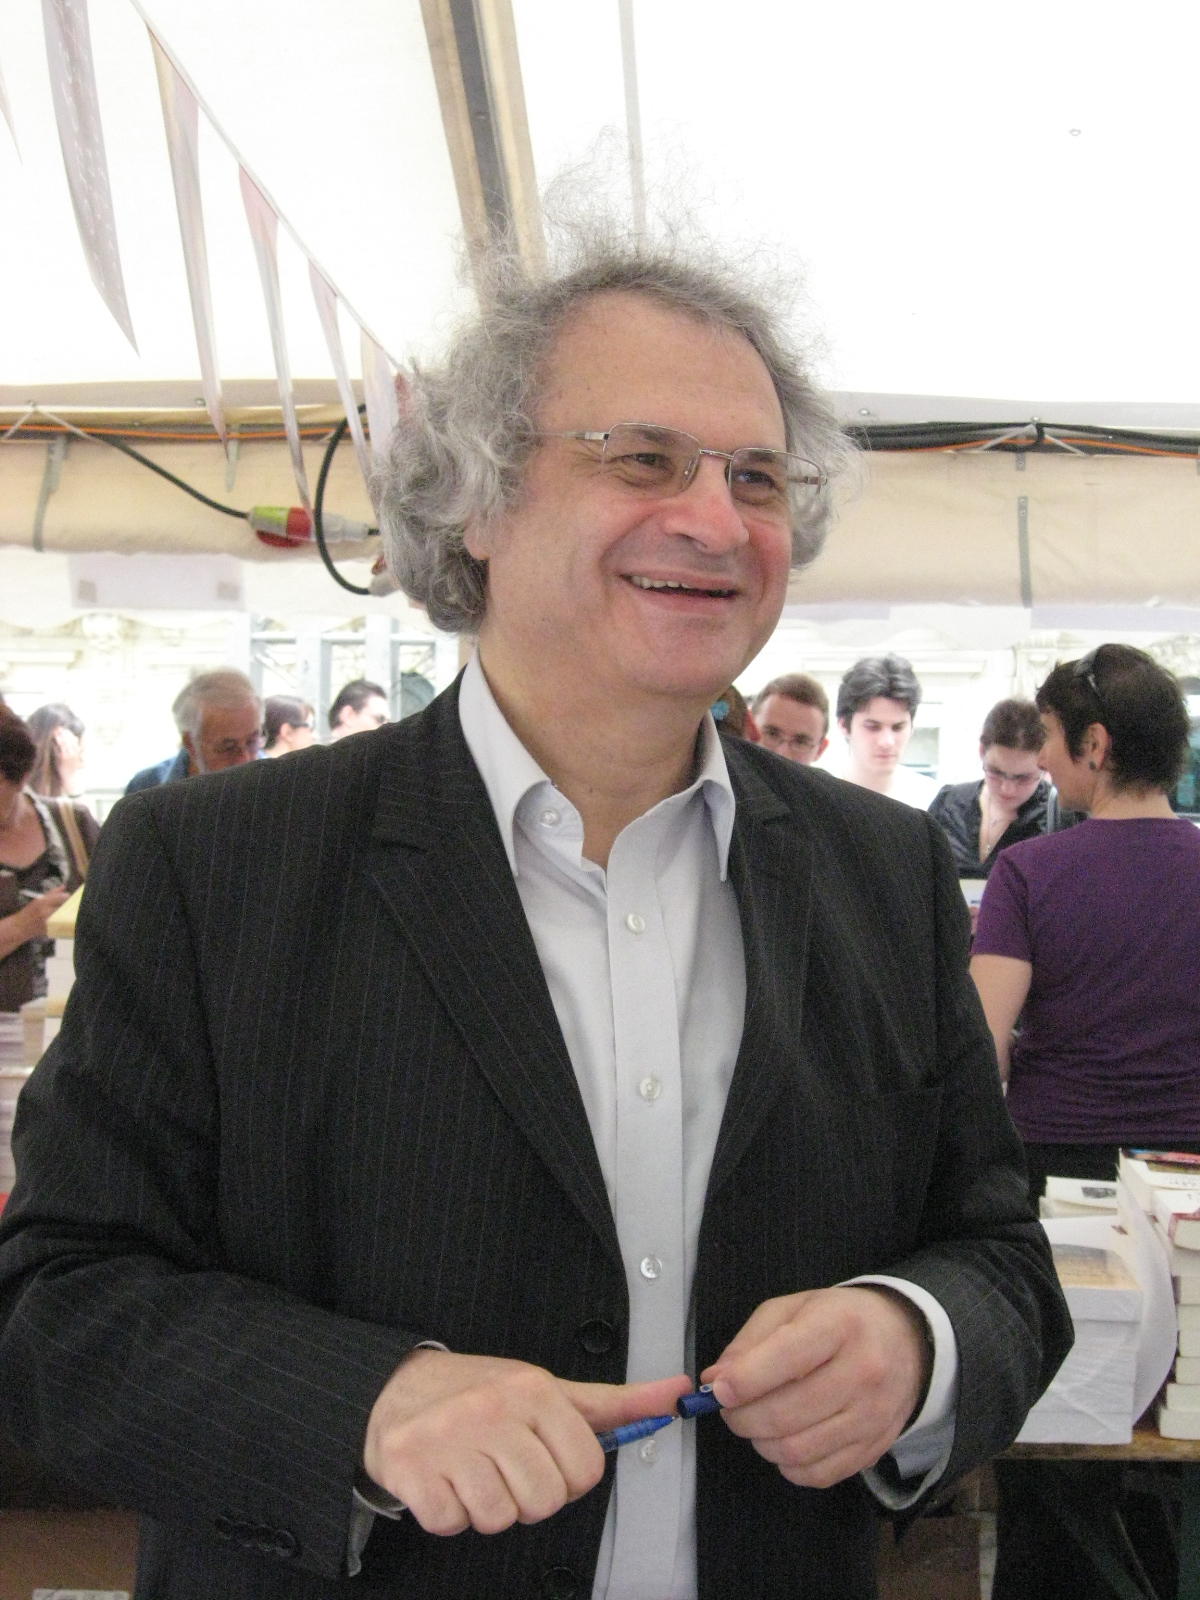 http://upload.wikimedia.org/wikipedia/commons/5/50/Amin_Maalouf.jpg